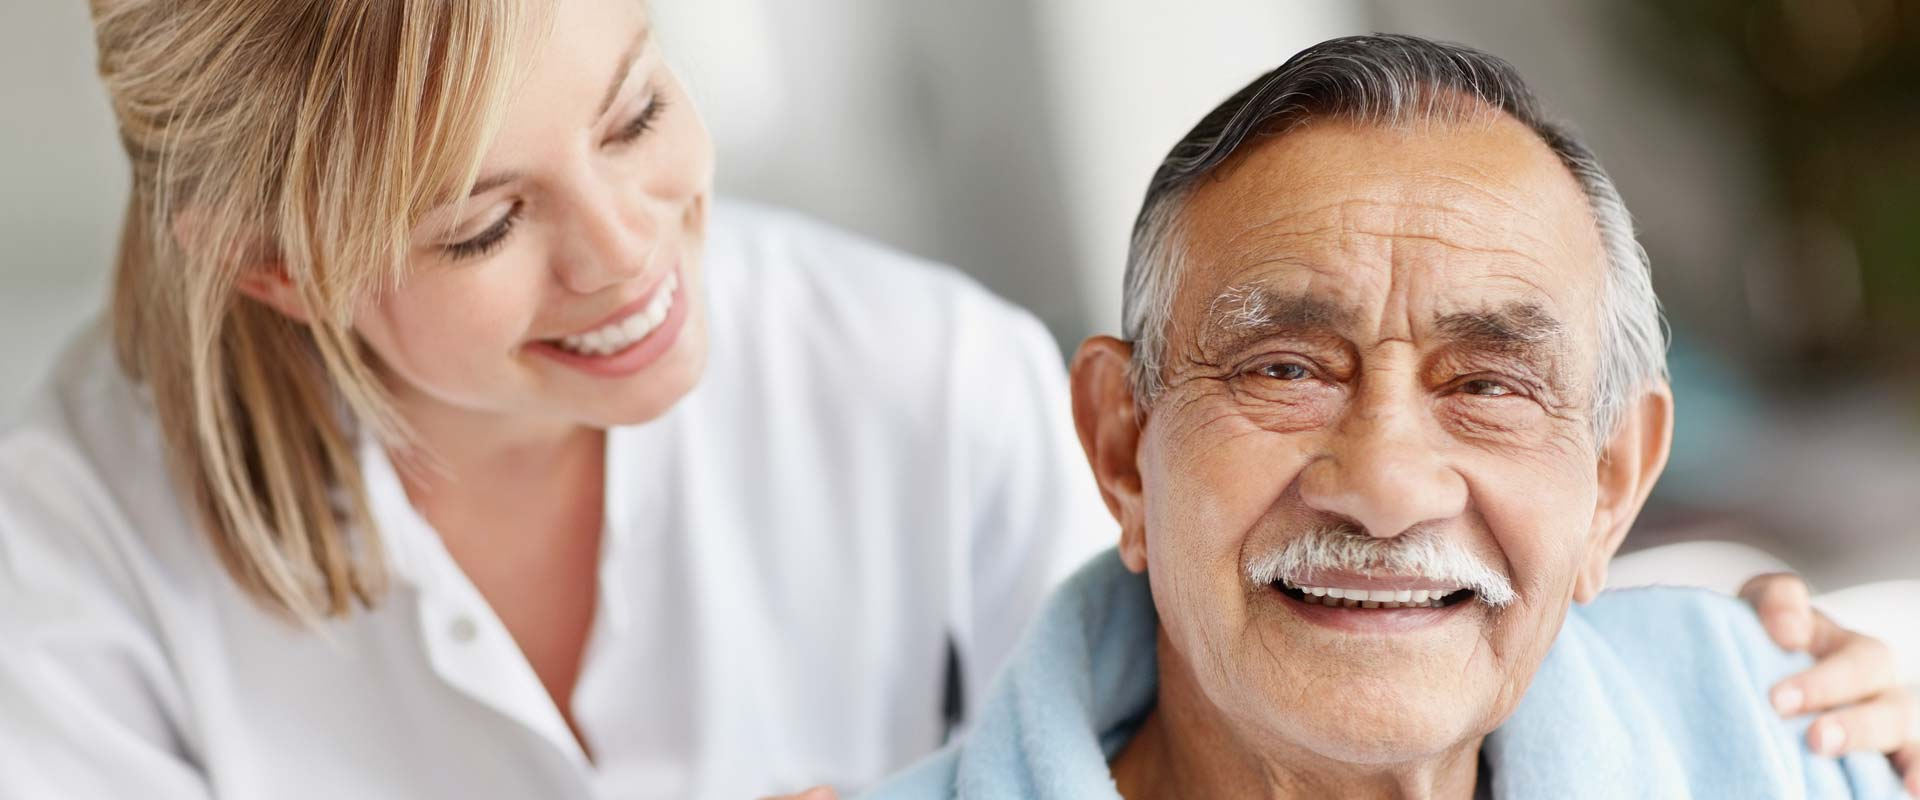 long term care Long-term care nurses help those who need extended care they work in a nursing home or out of patients' homes a long-term care nurse looks after patients who need care for an extended period due to a disability or illness.